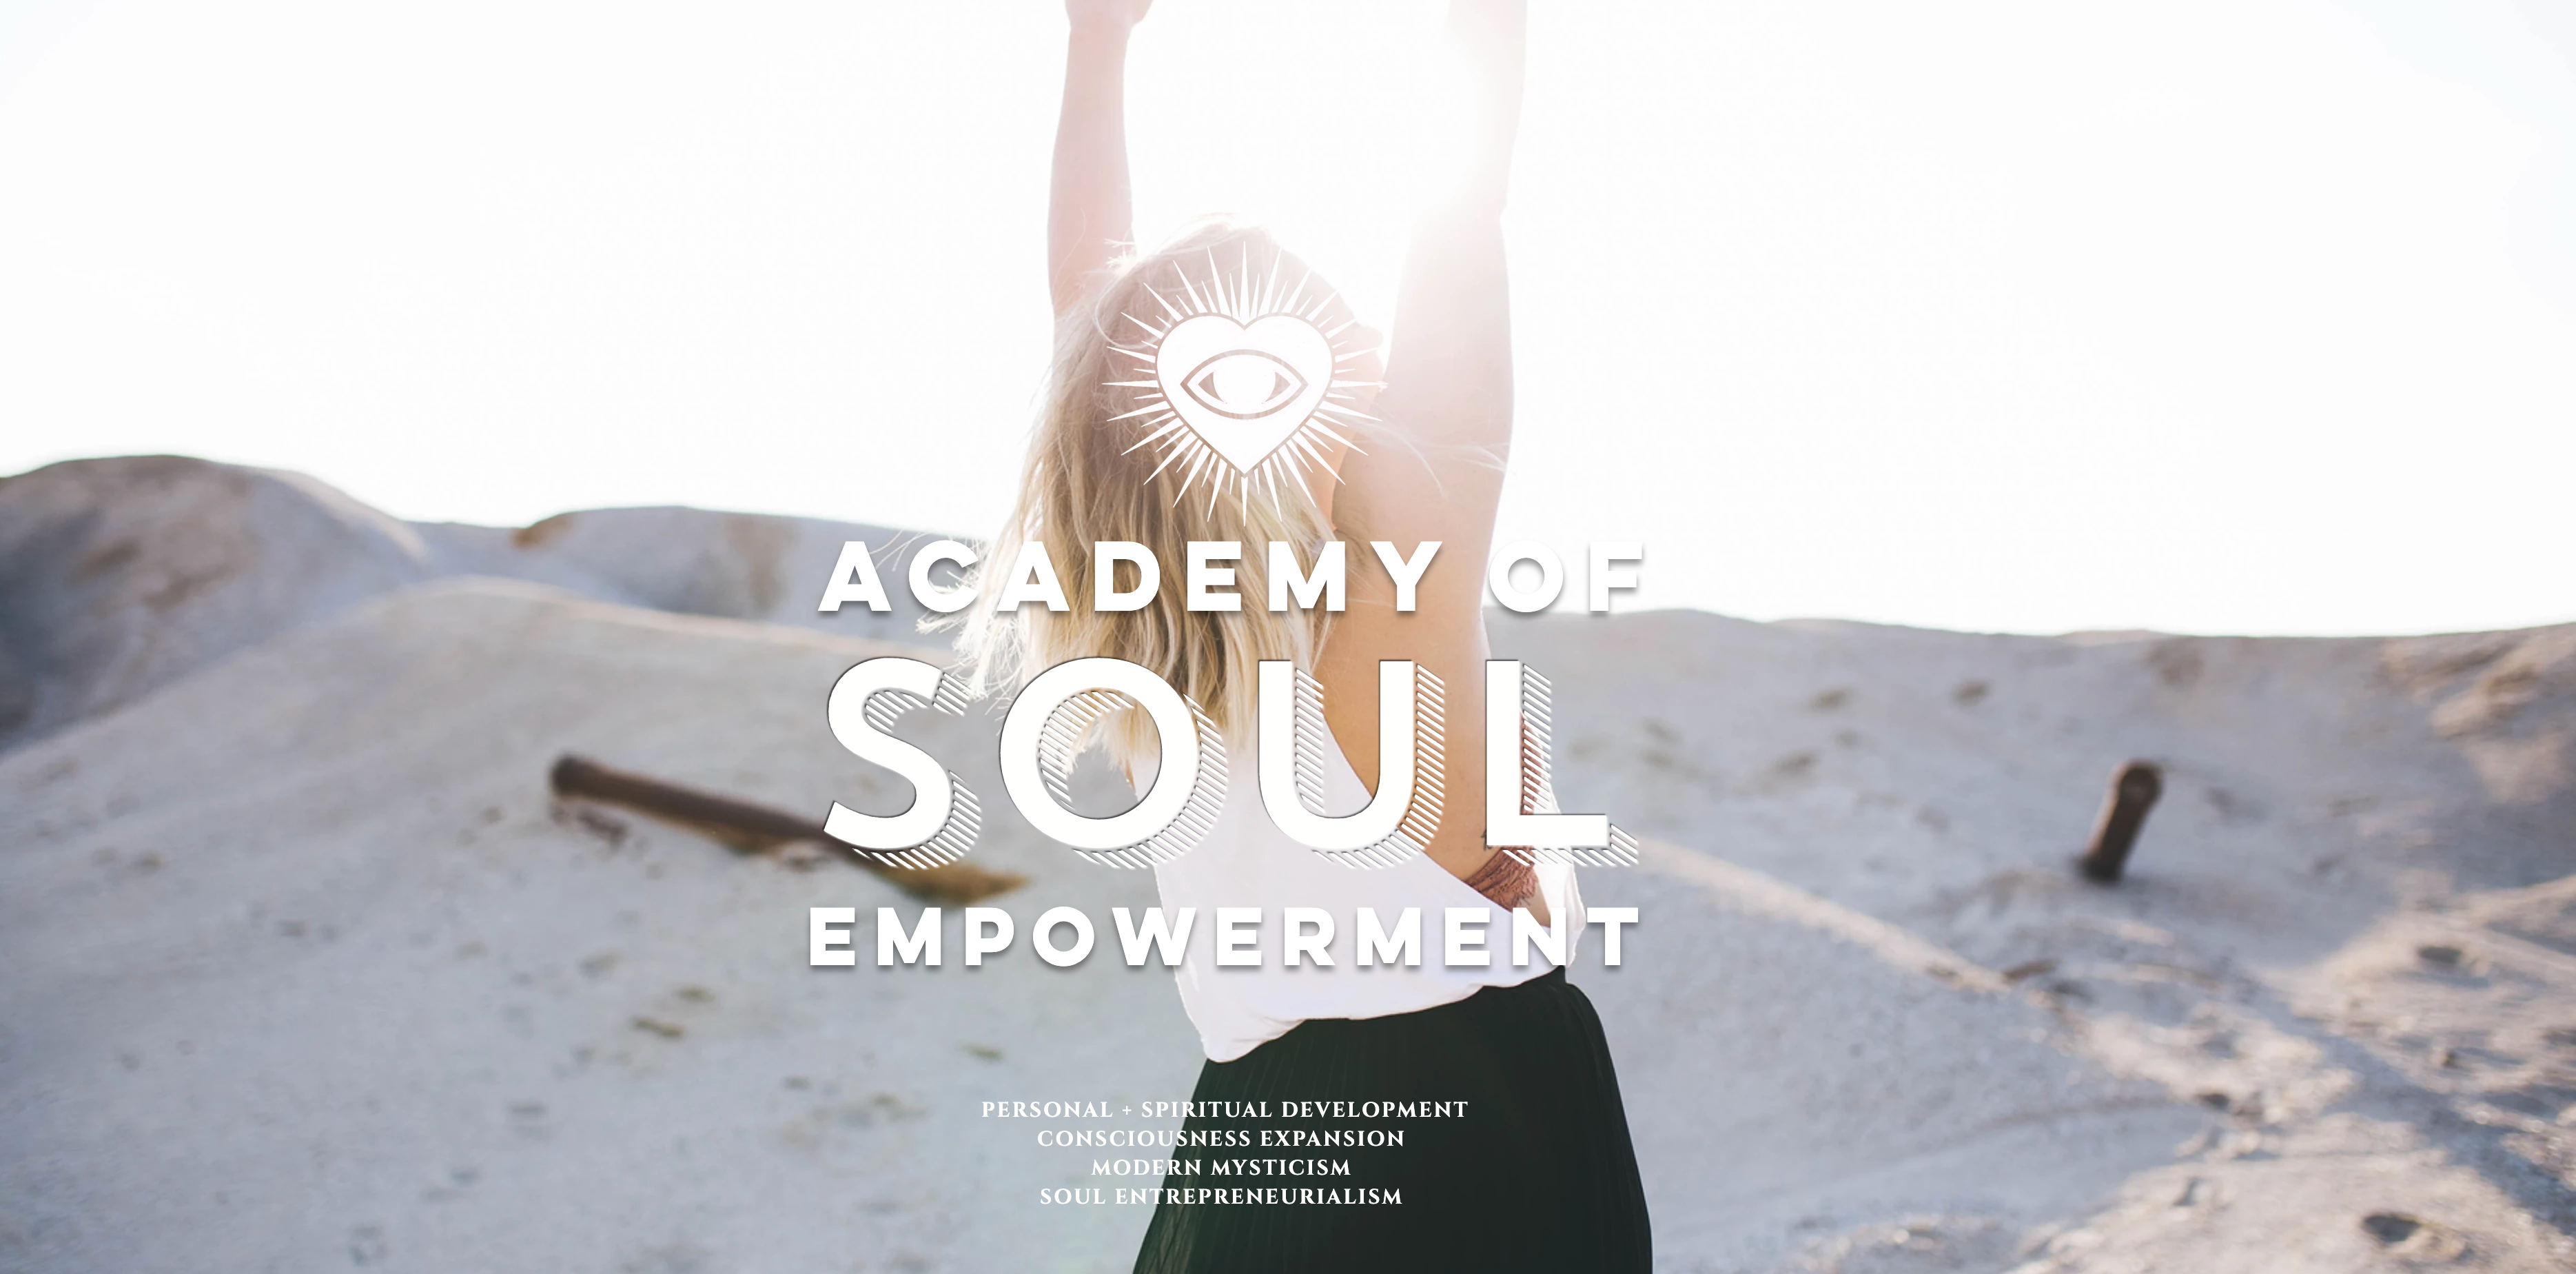 ACADEMY OF SOUL MENTORING